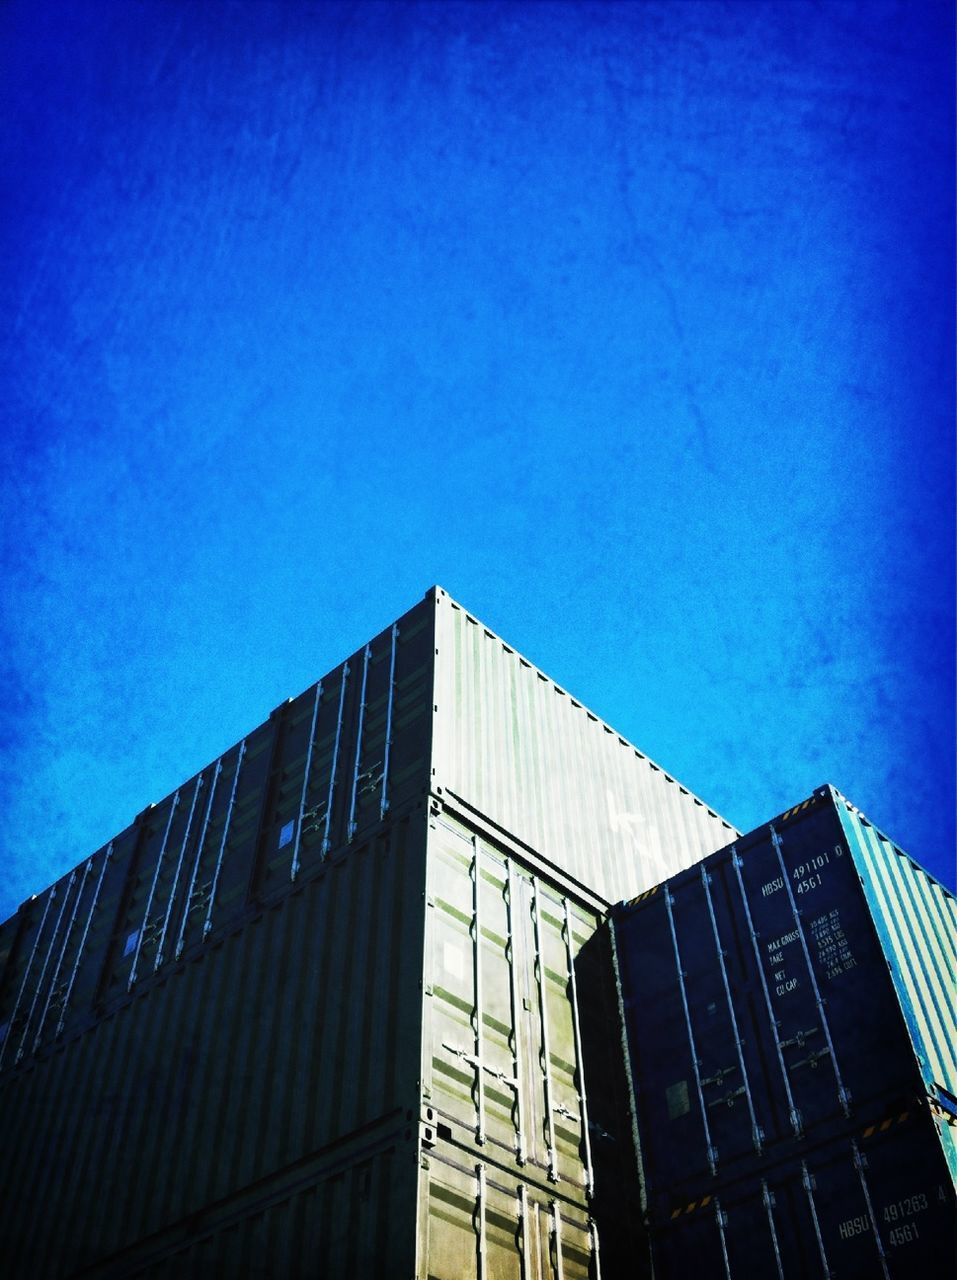 Low angle view of cargo containers against sky